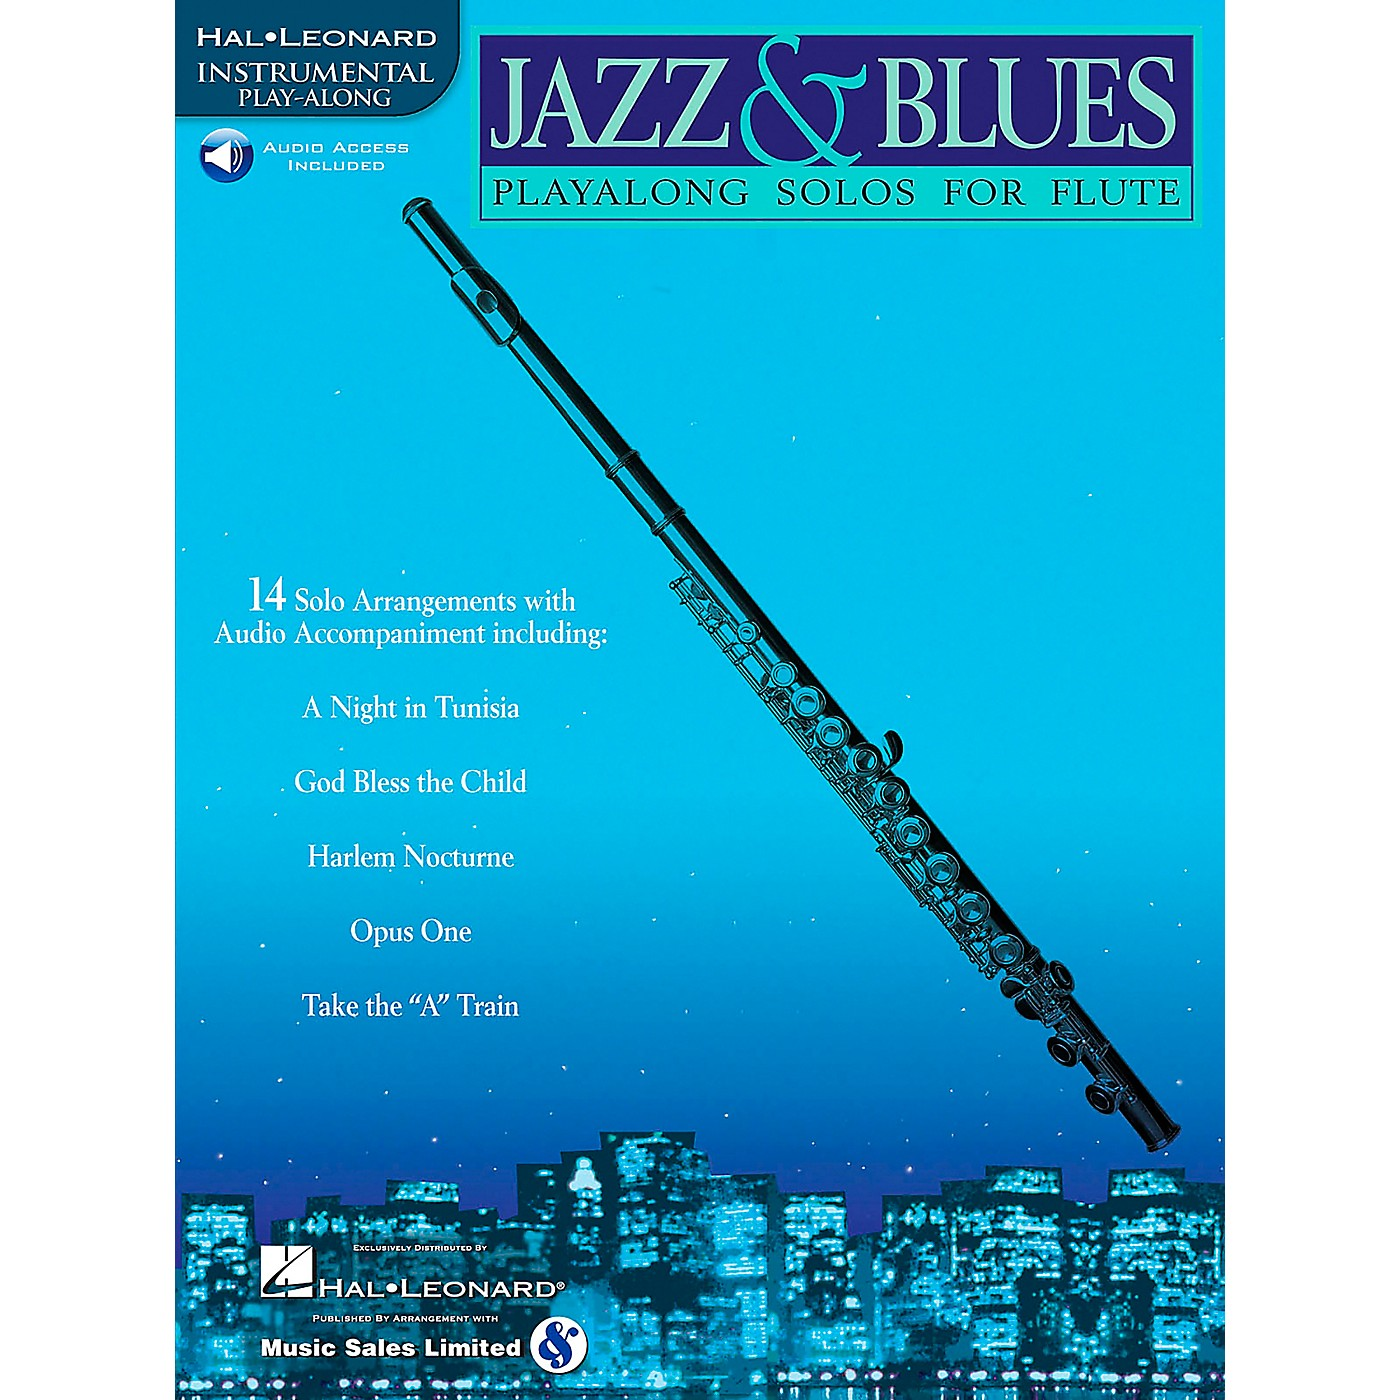 Hal Leonard Jazz And Blues Playalong Solos for Flute Book/CD thumbnail